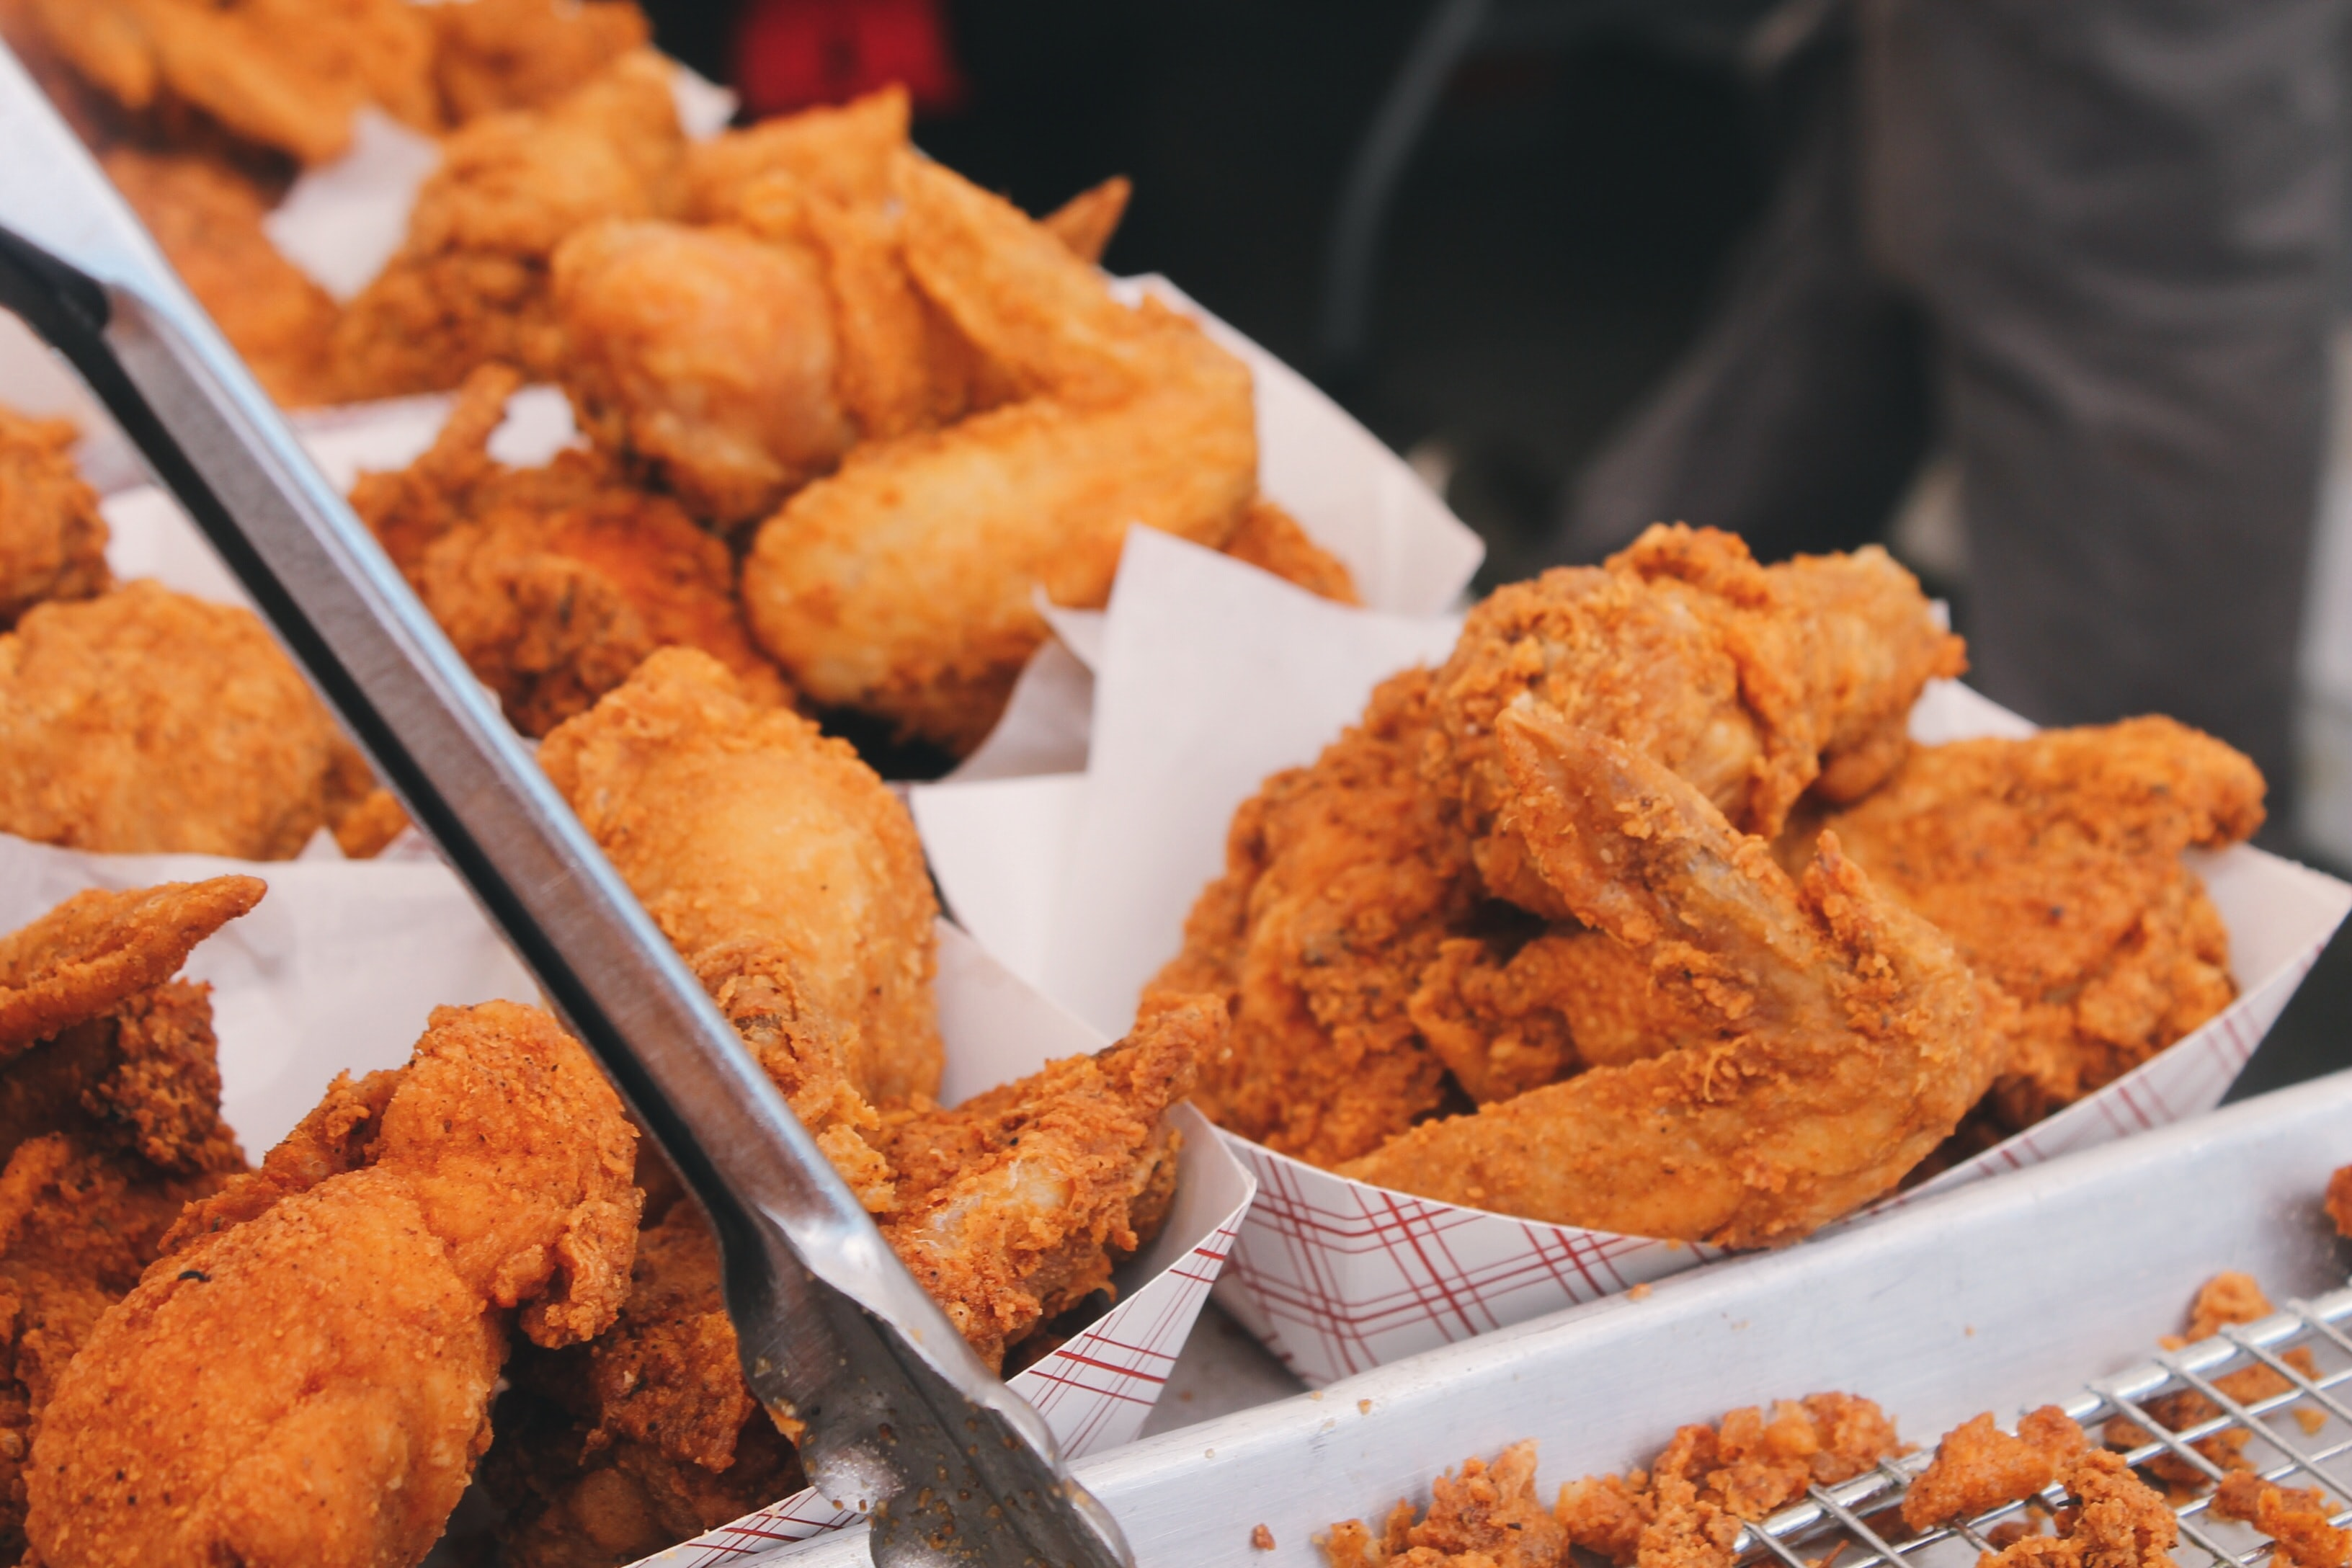 Baskets of American Southern deep-fried chicken at a fast food restaurant